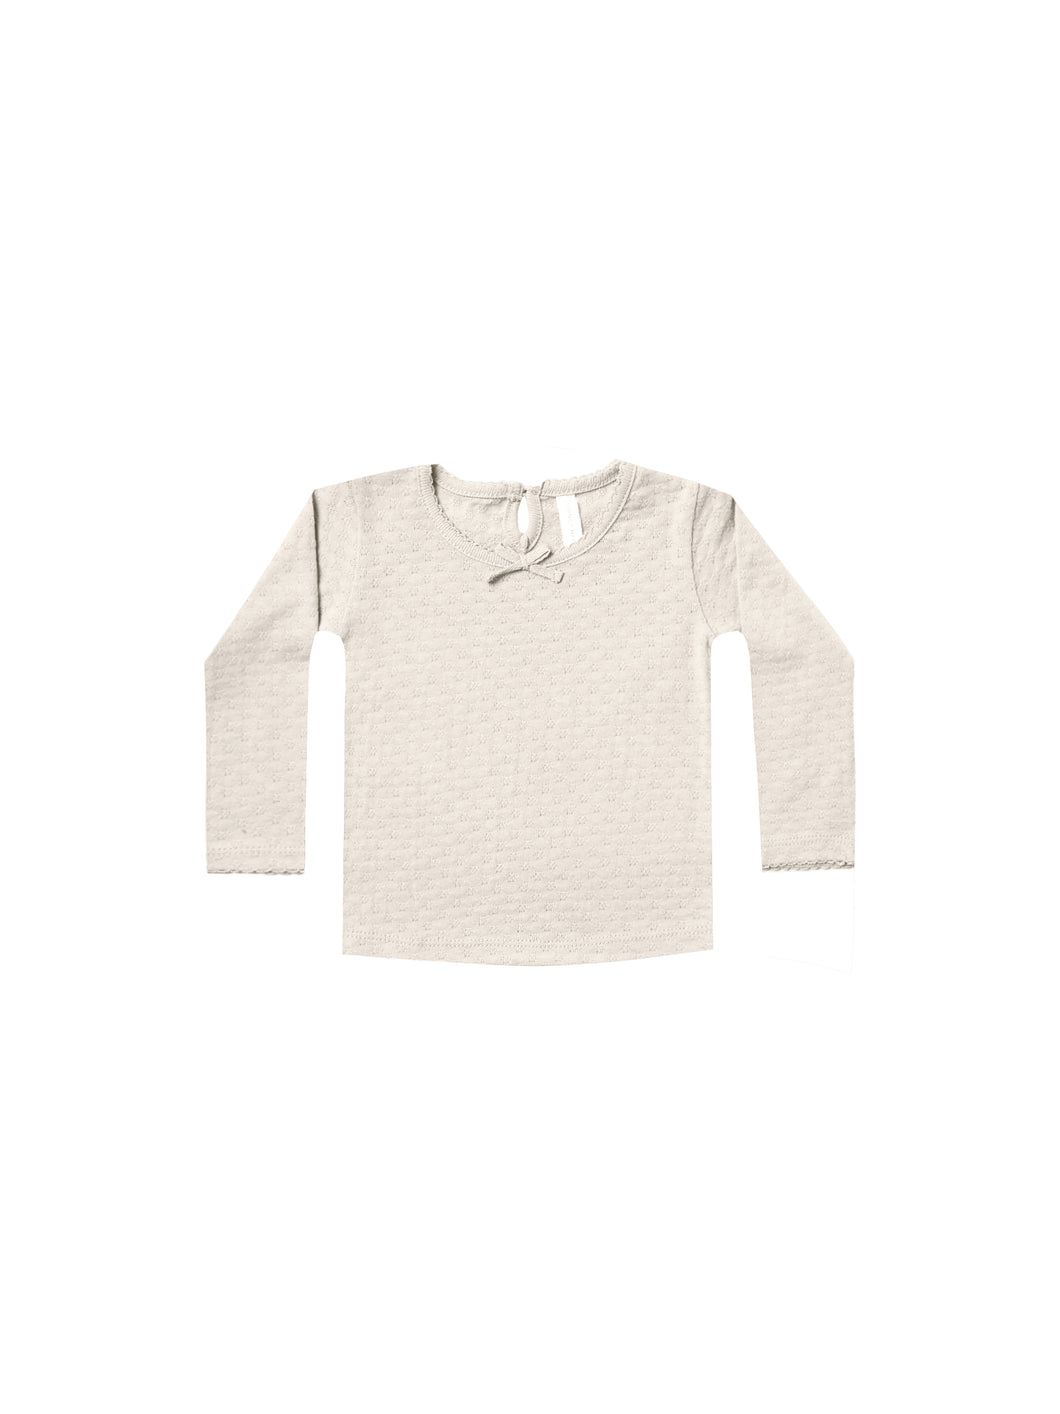 Pointelle Longsleeve Tee - Pebble